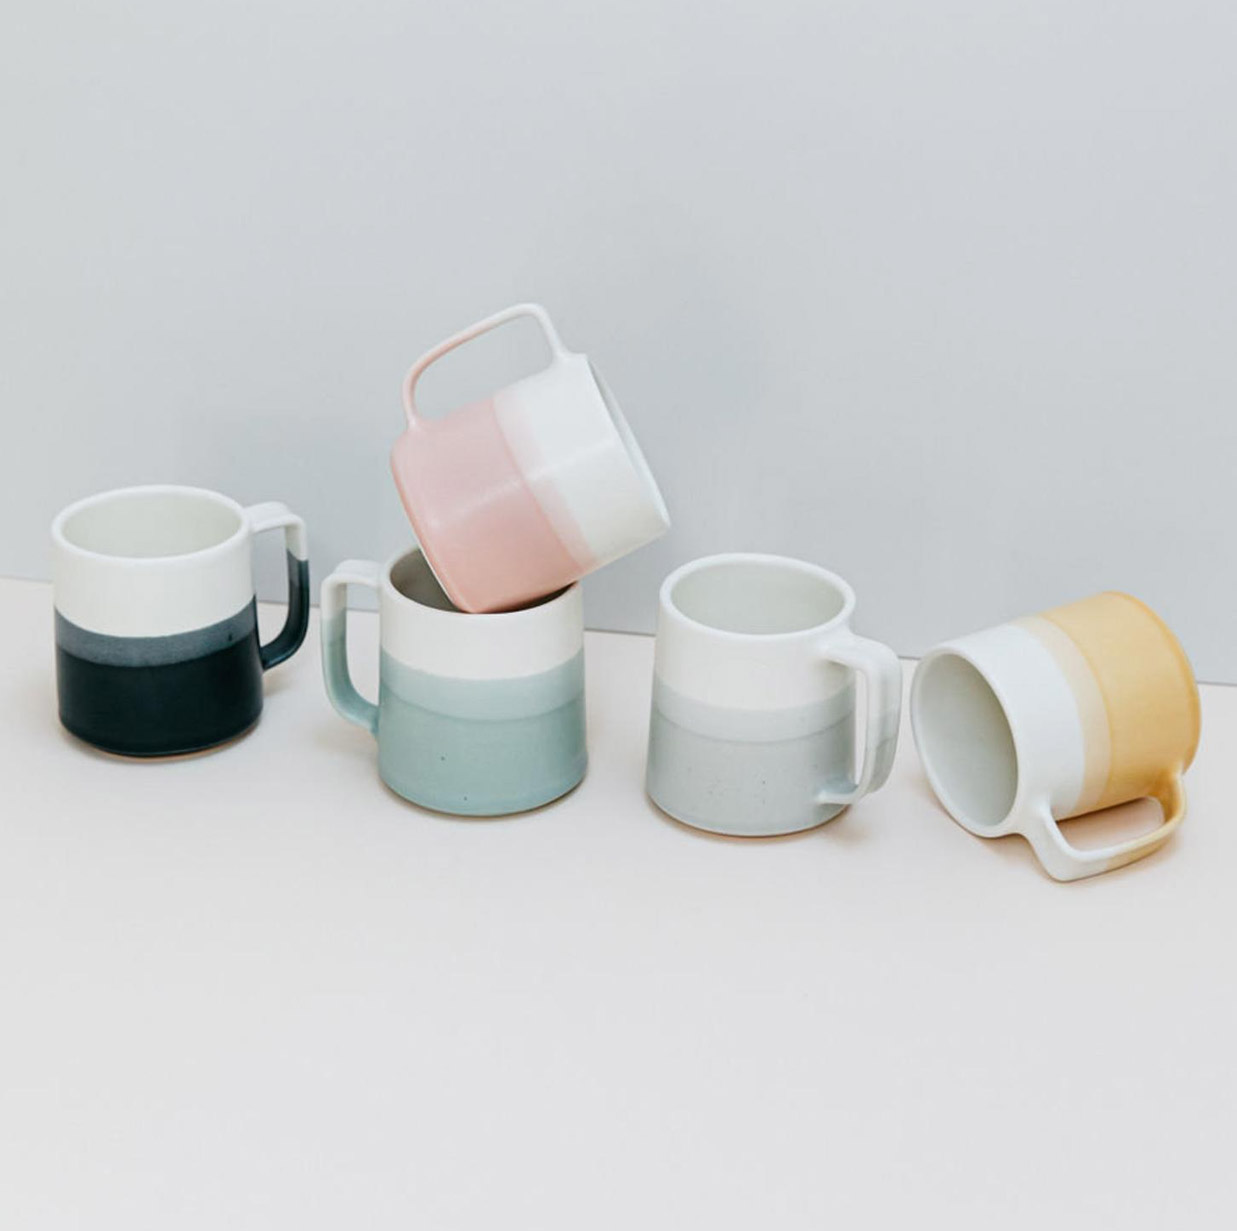 dip-dyed cups